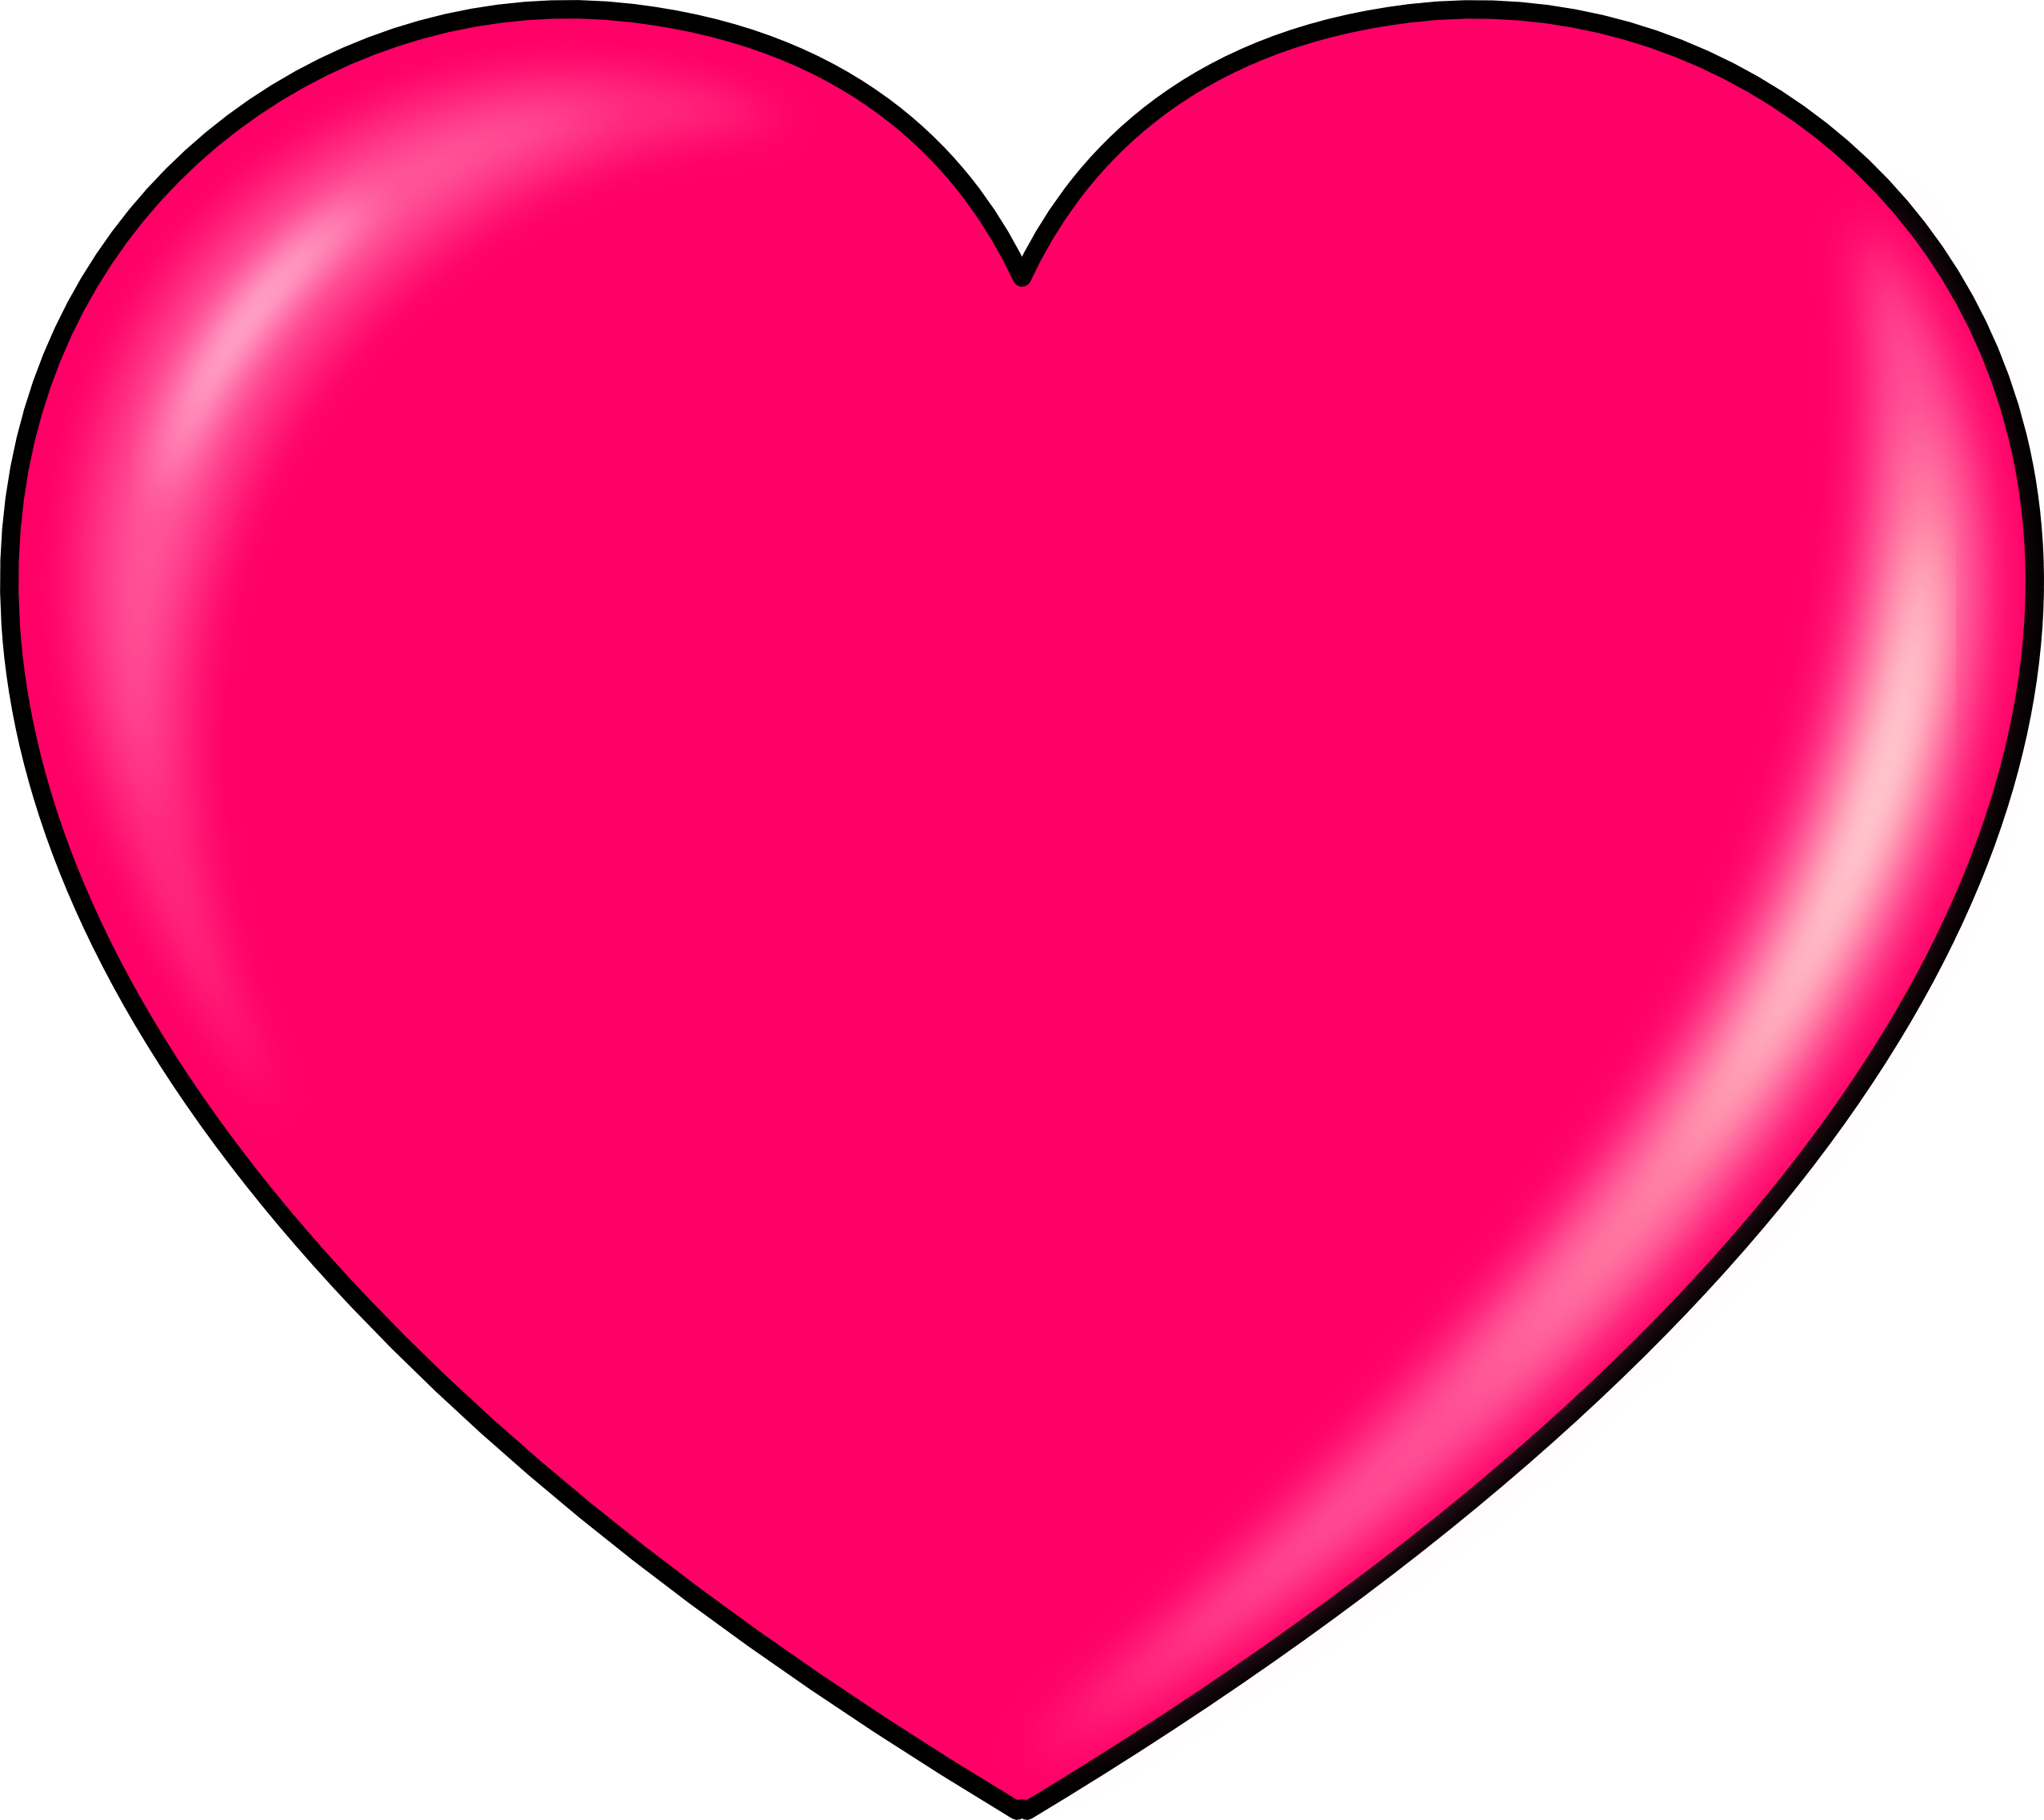 Heart clipart. Pink transparent png stickpng